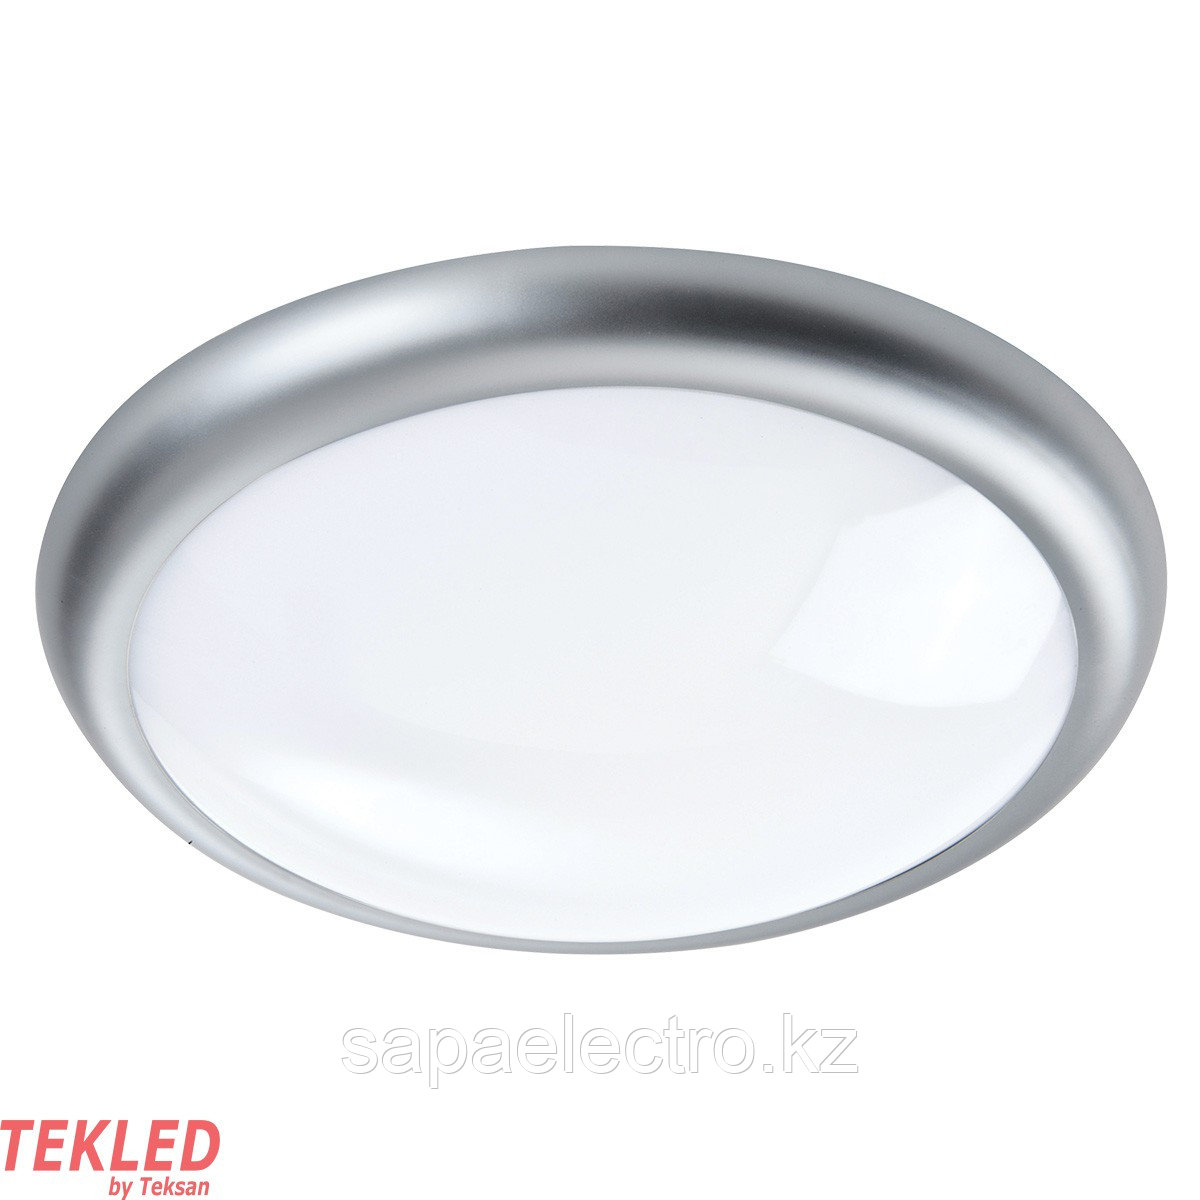 Свет-к LED DORRIS 20W 4000K NEW SILVER (TS) 20шт